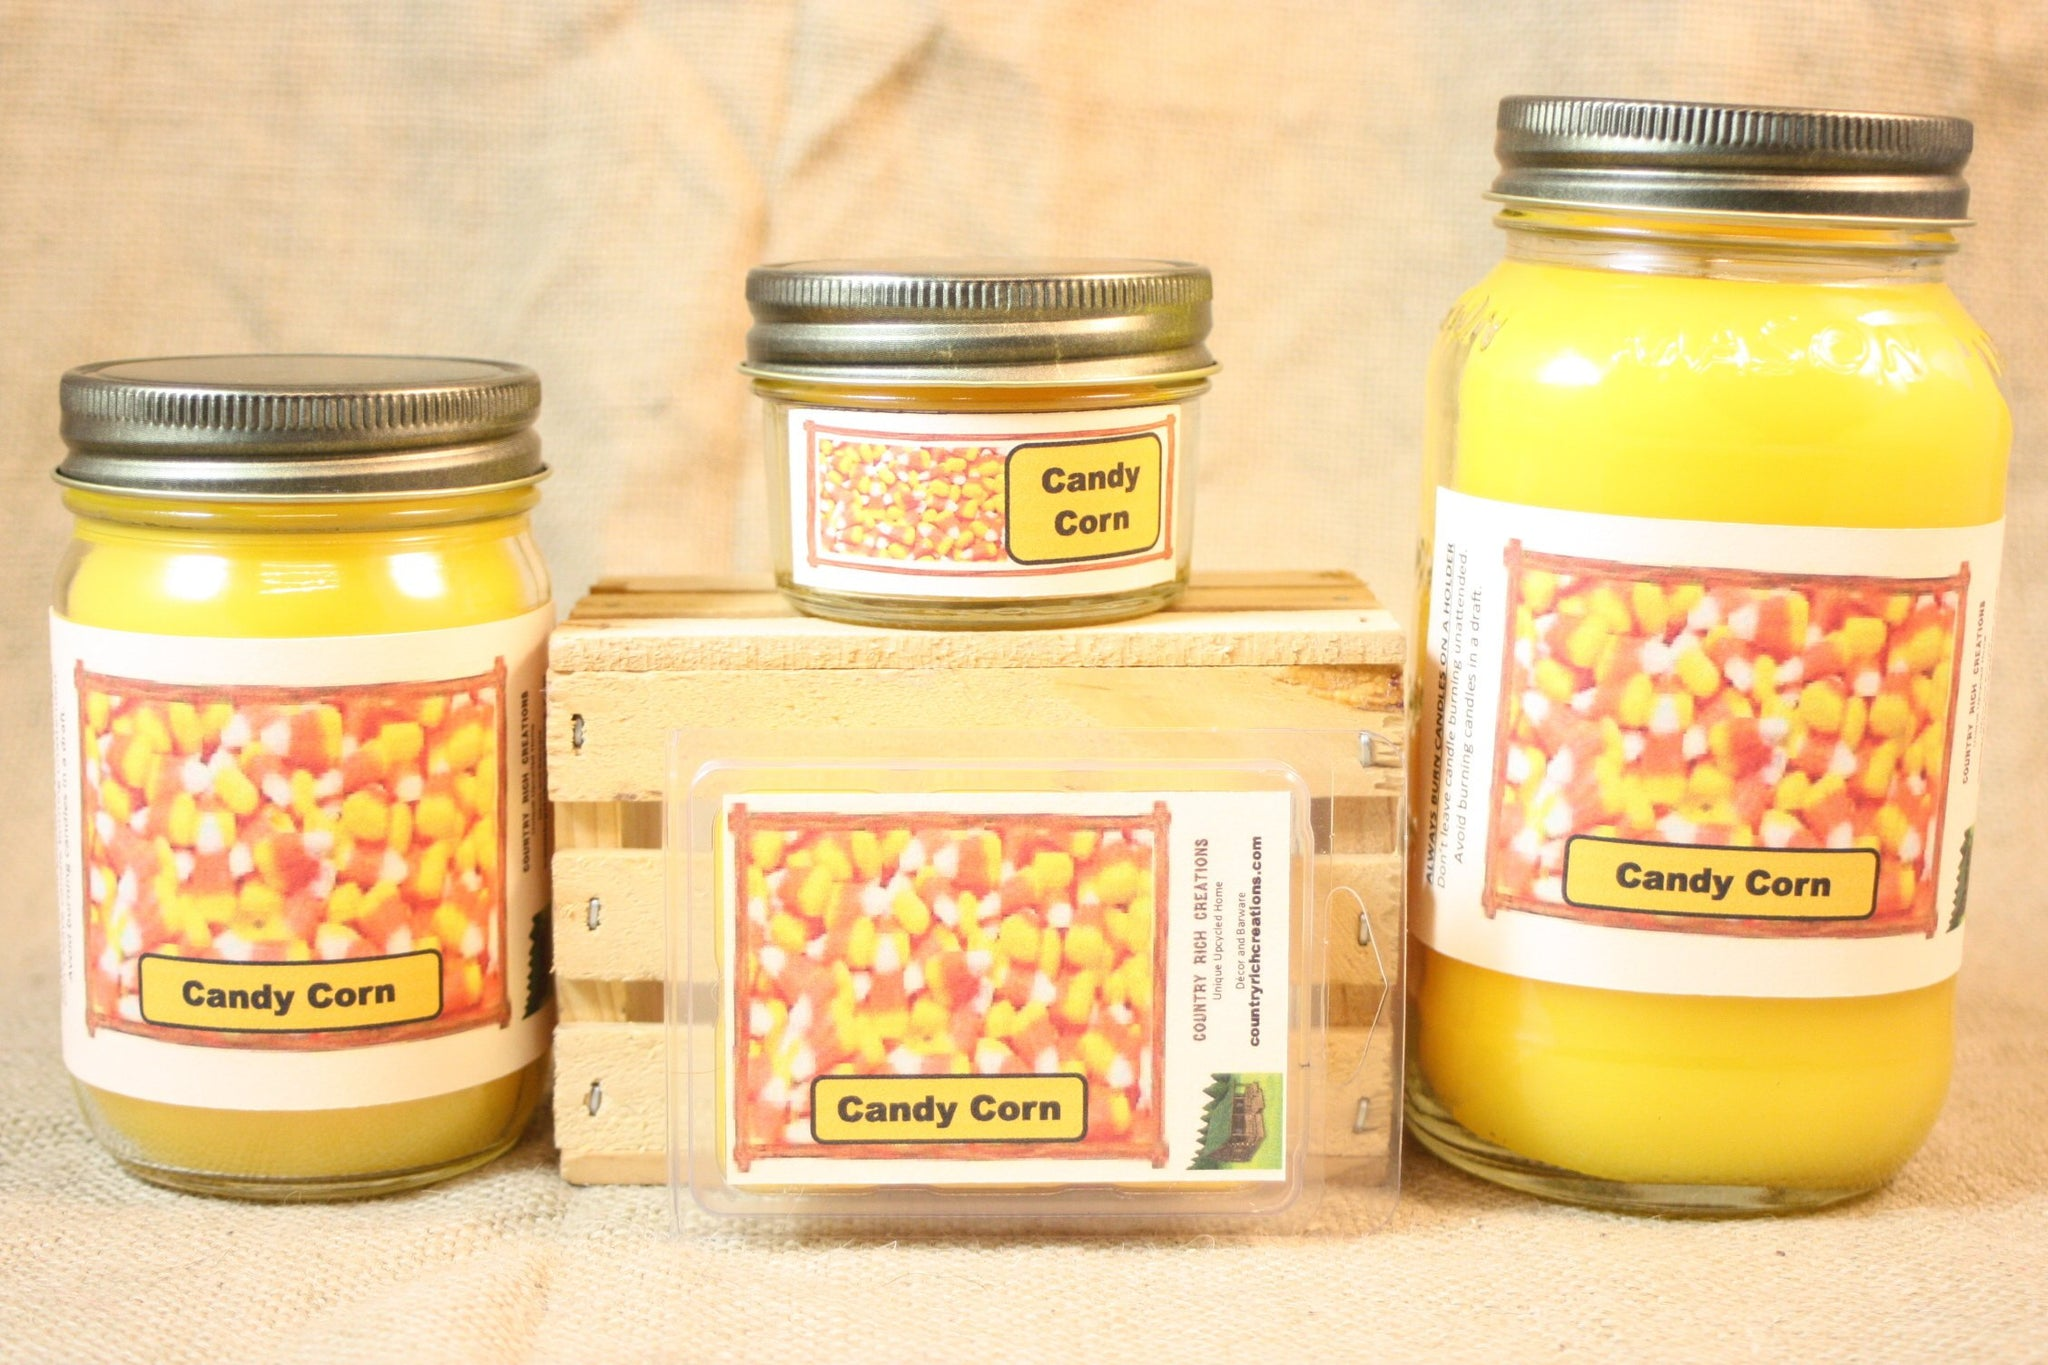 Candy Corn Candle And Wax Melts Candy Scent Candle Highly Scented Ca Country Rich Creations Llc